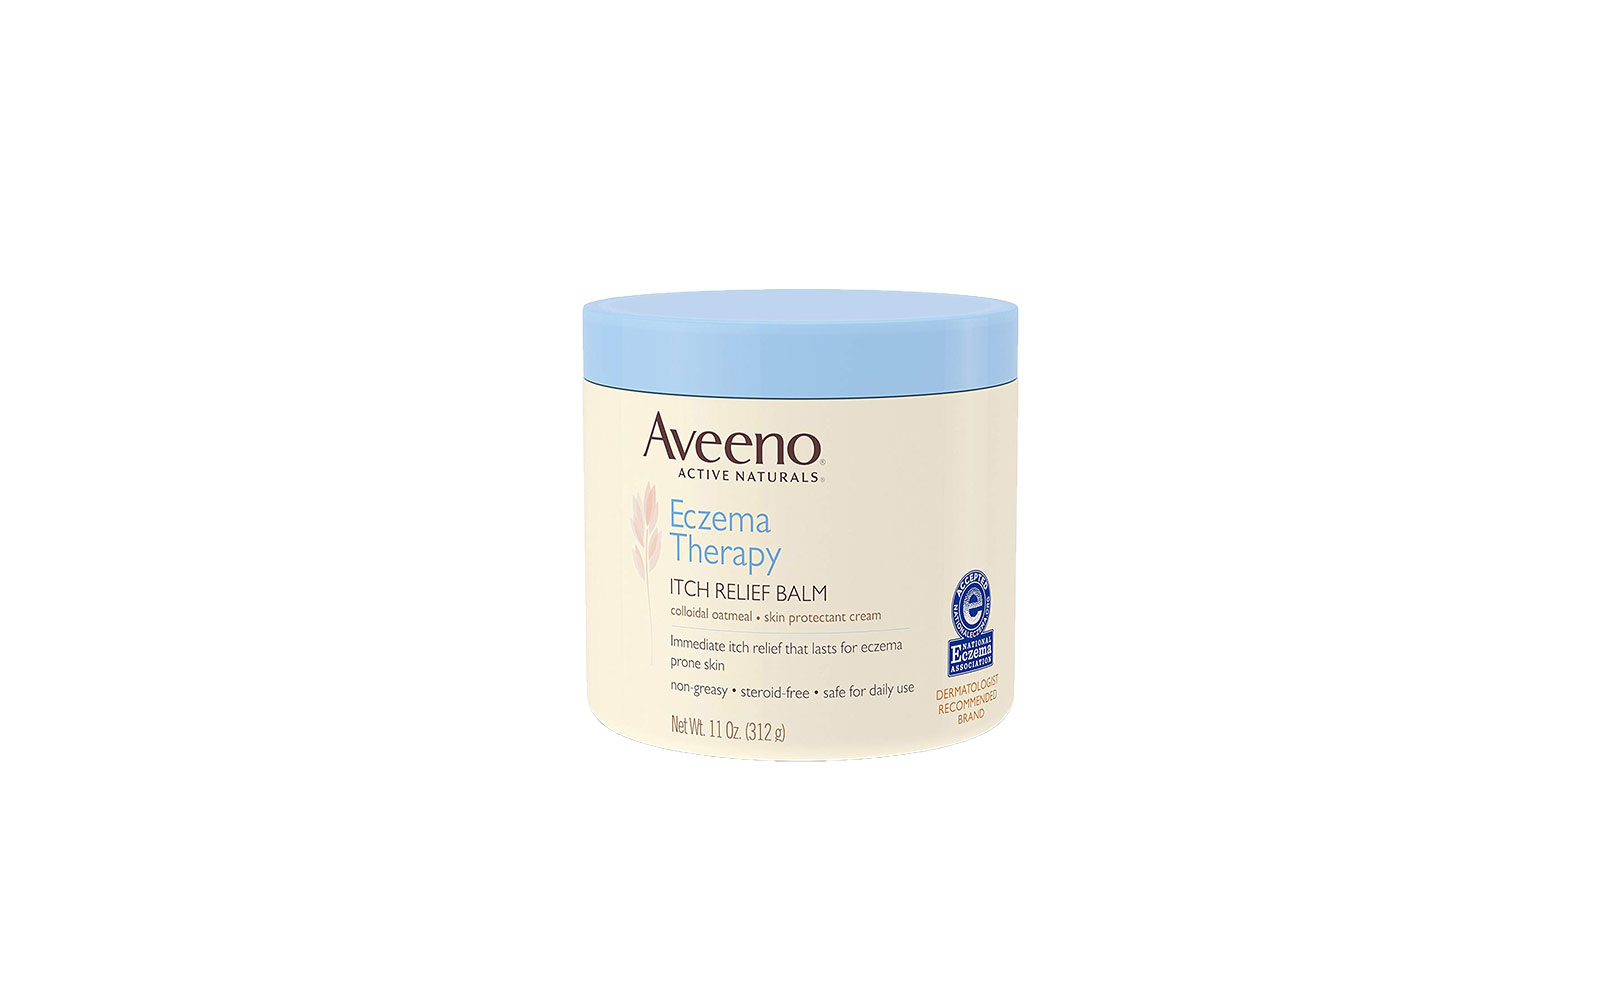 Best Hand Cream for Eczema: Aveeno Active Naturals Eczema Therapy Itch Relief Balm